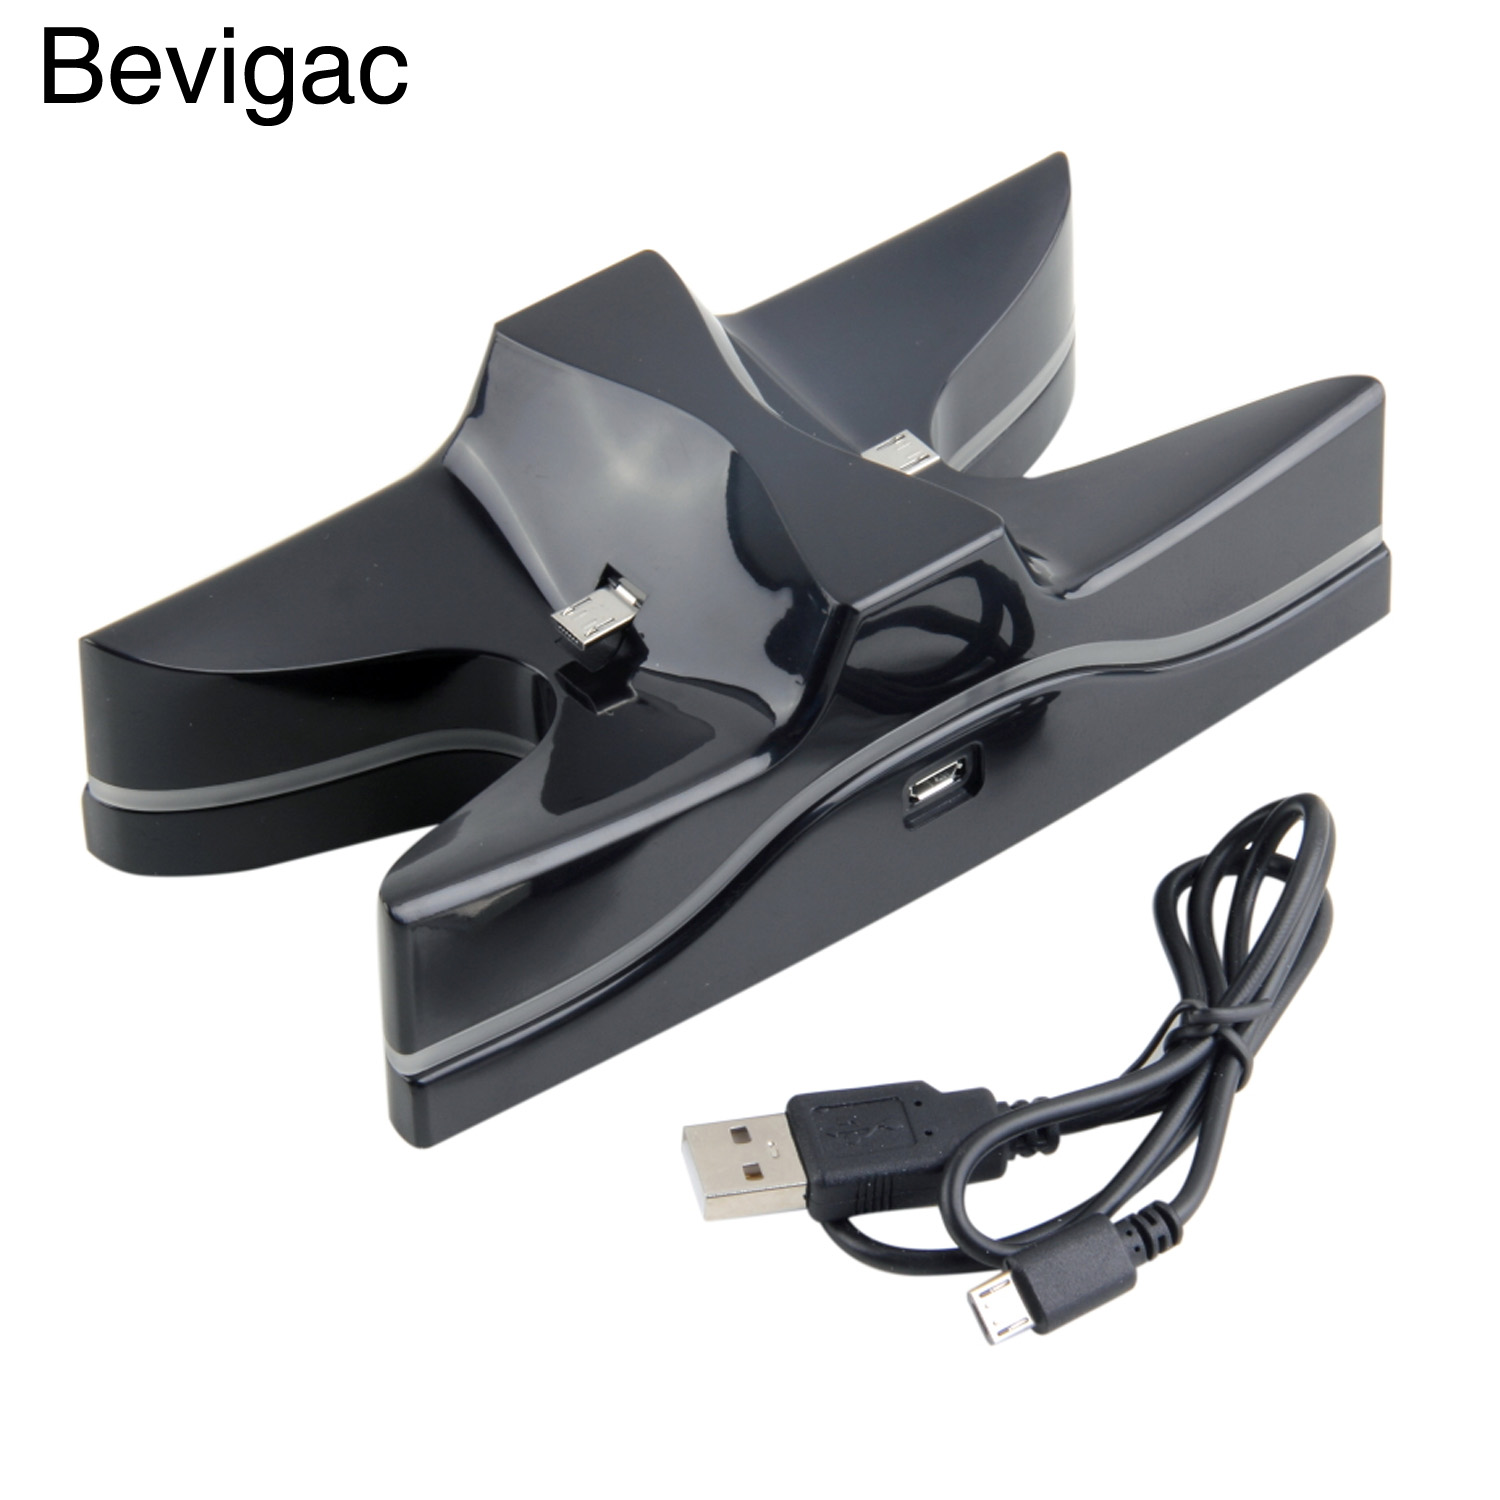 Bevigac Dual Charging Stand Dock Station for Sony PlayStation PS4 Play Station PS 4 Controller Console Game Charger Accessories